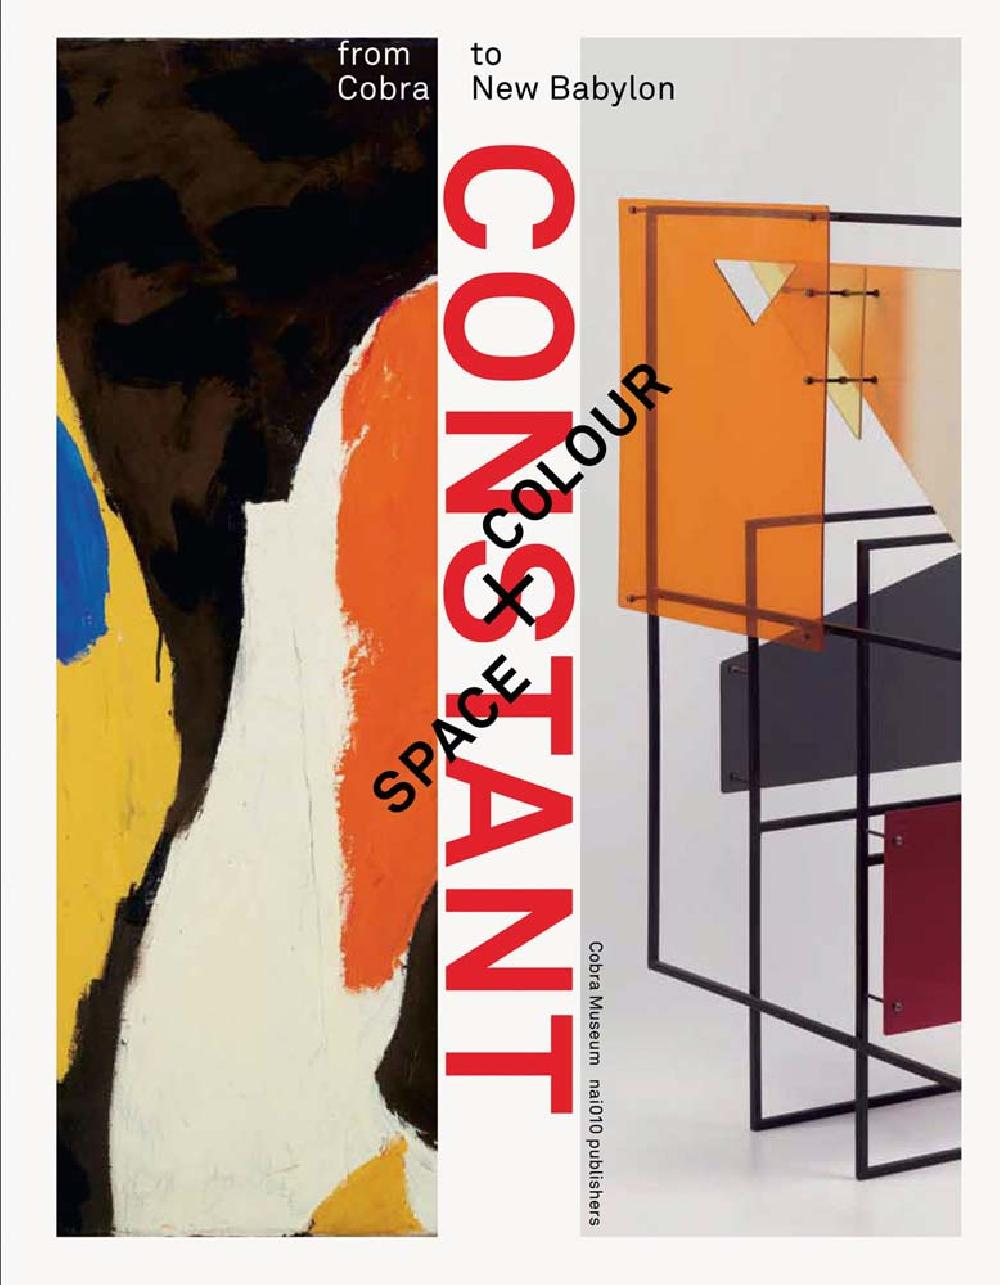 Constant Space + Colour From Cobra To New Babylon